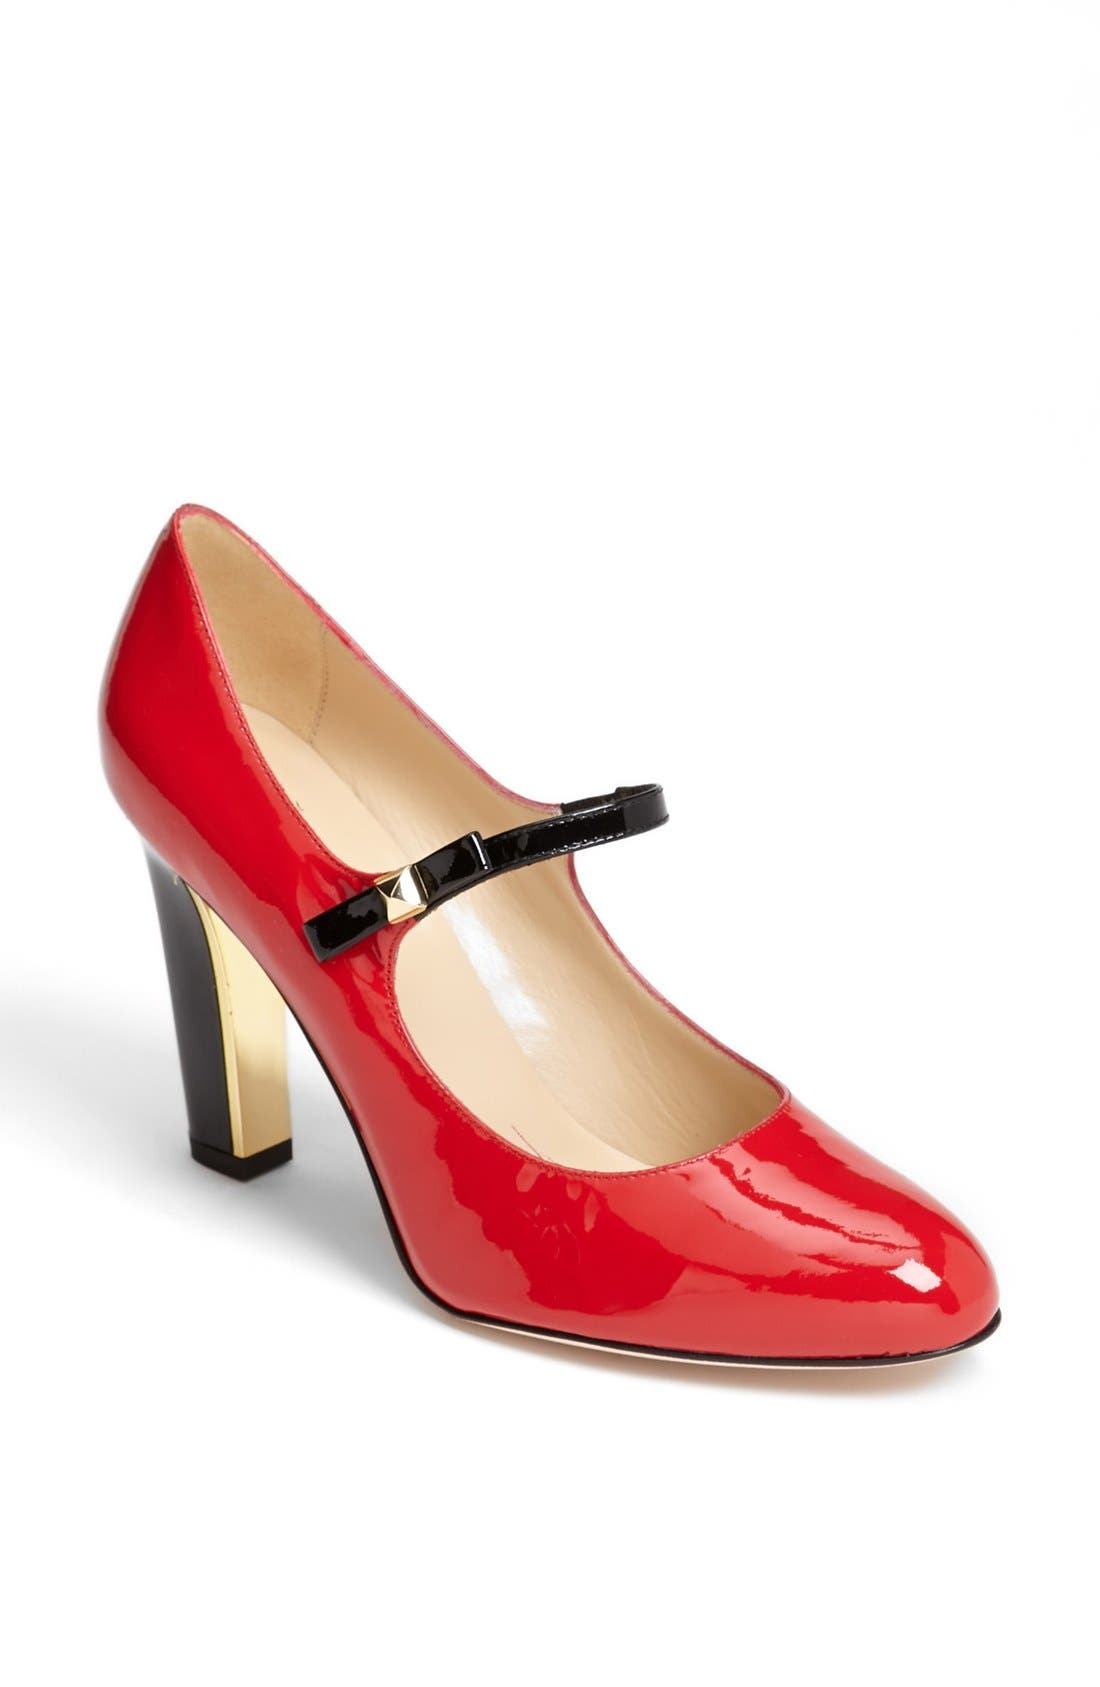 Alternate Image 1 Selected - kate spade new york 'nuovo' pump